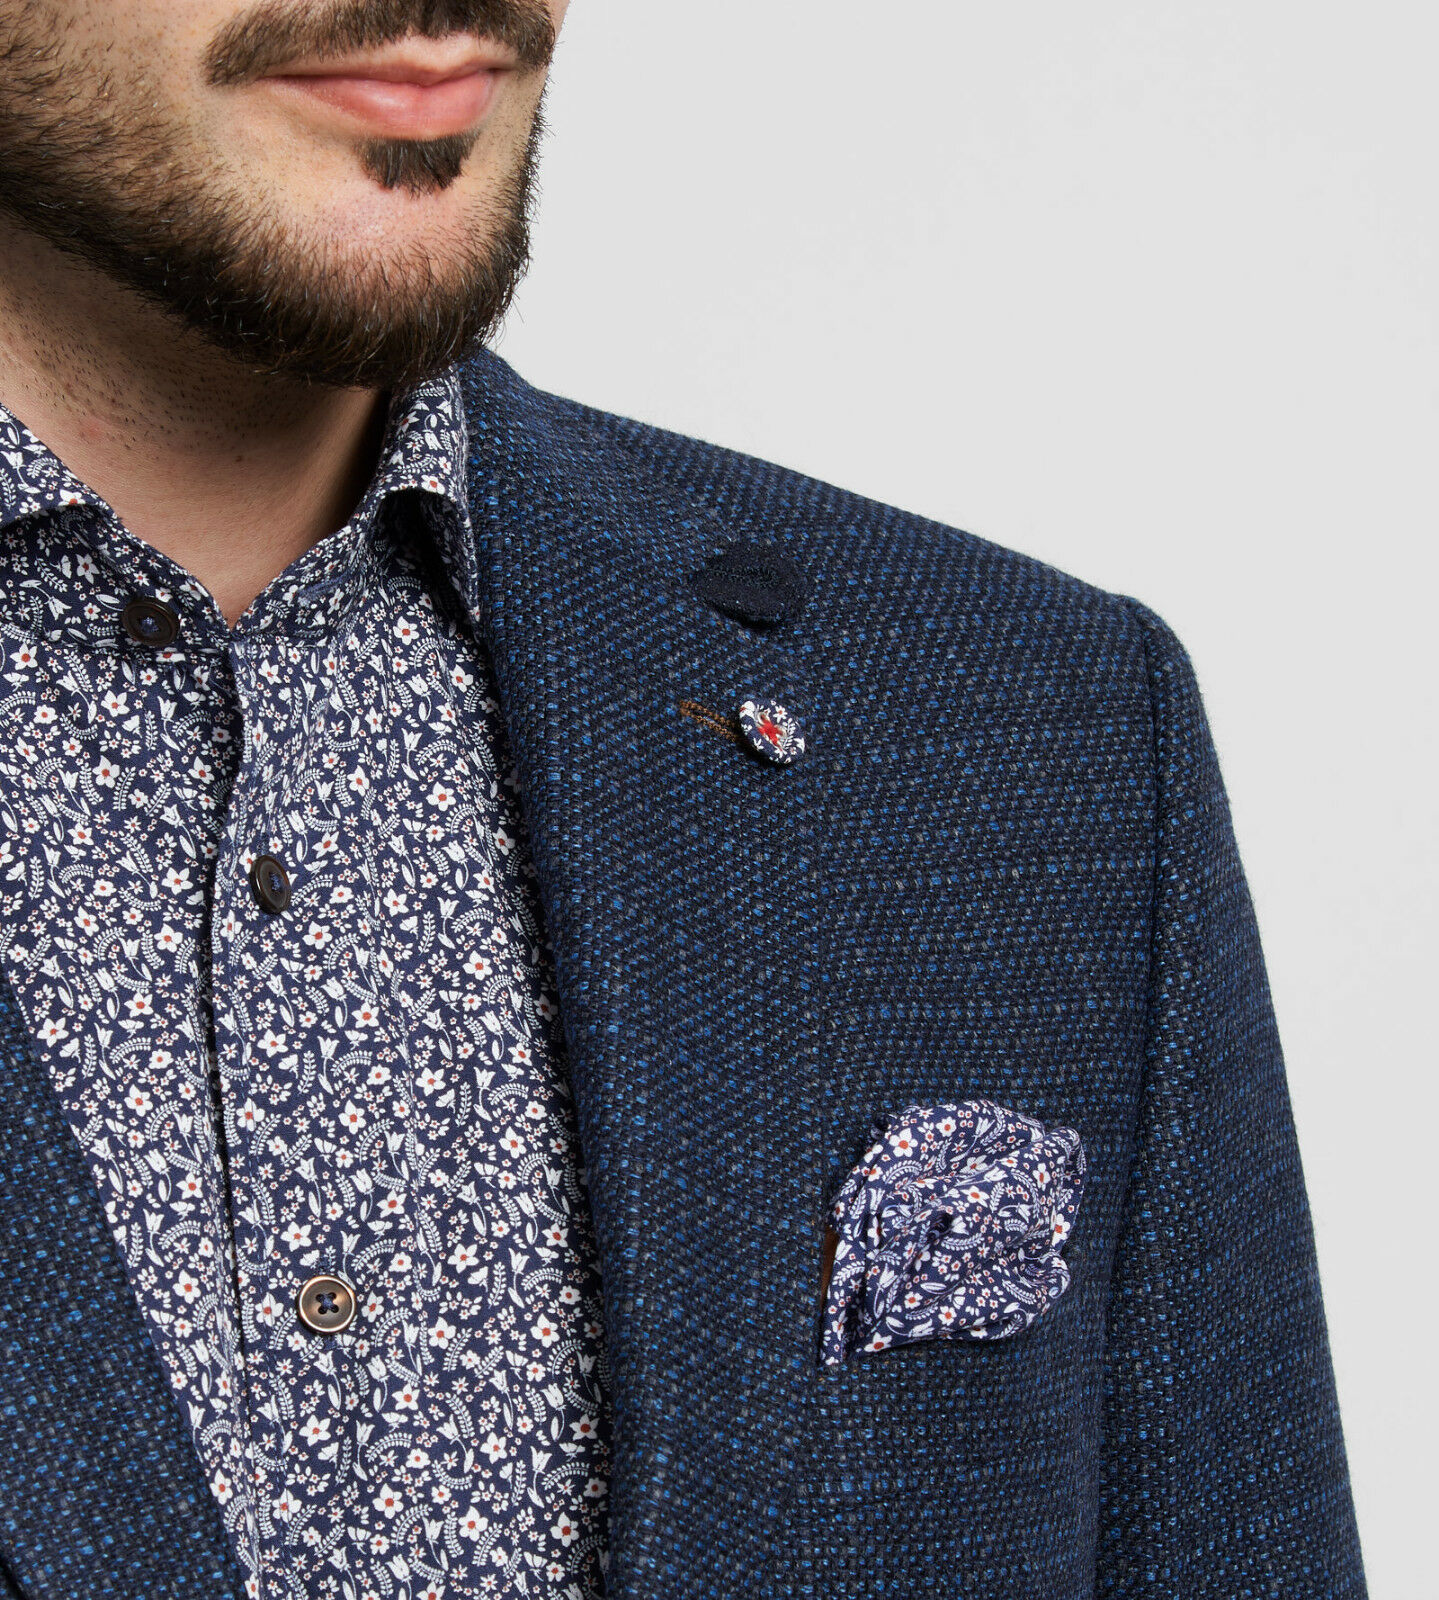 Giacca blue Marine Digel Lana Tweed Drop Quattro Corto Modern Fit Autunno Inverno